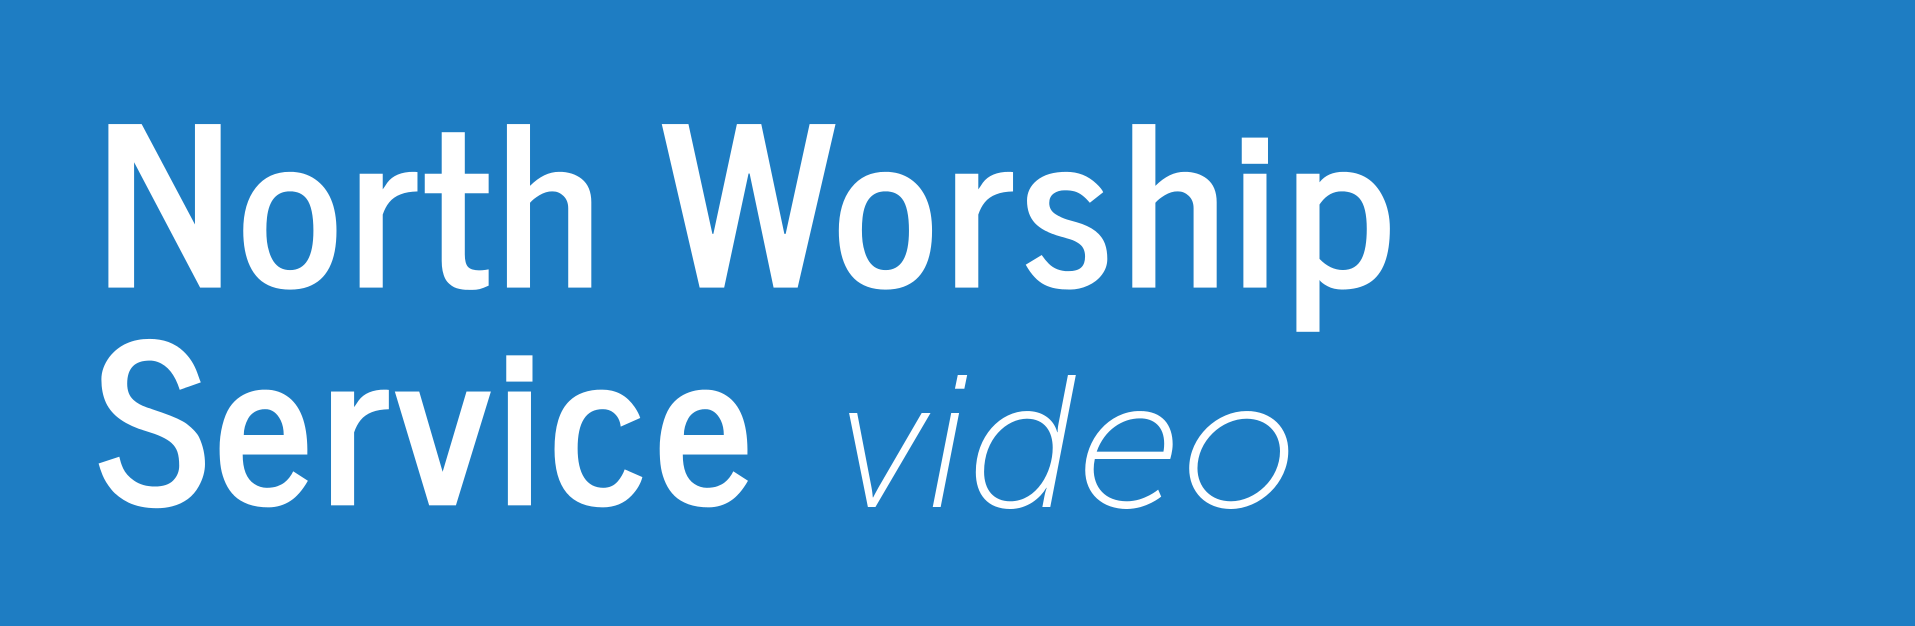 Video Worship Service - no website